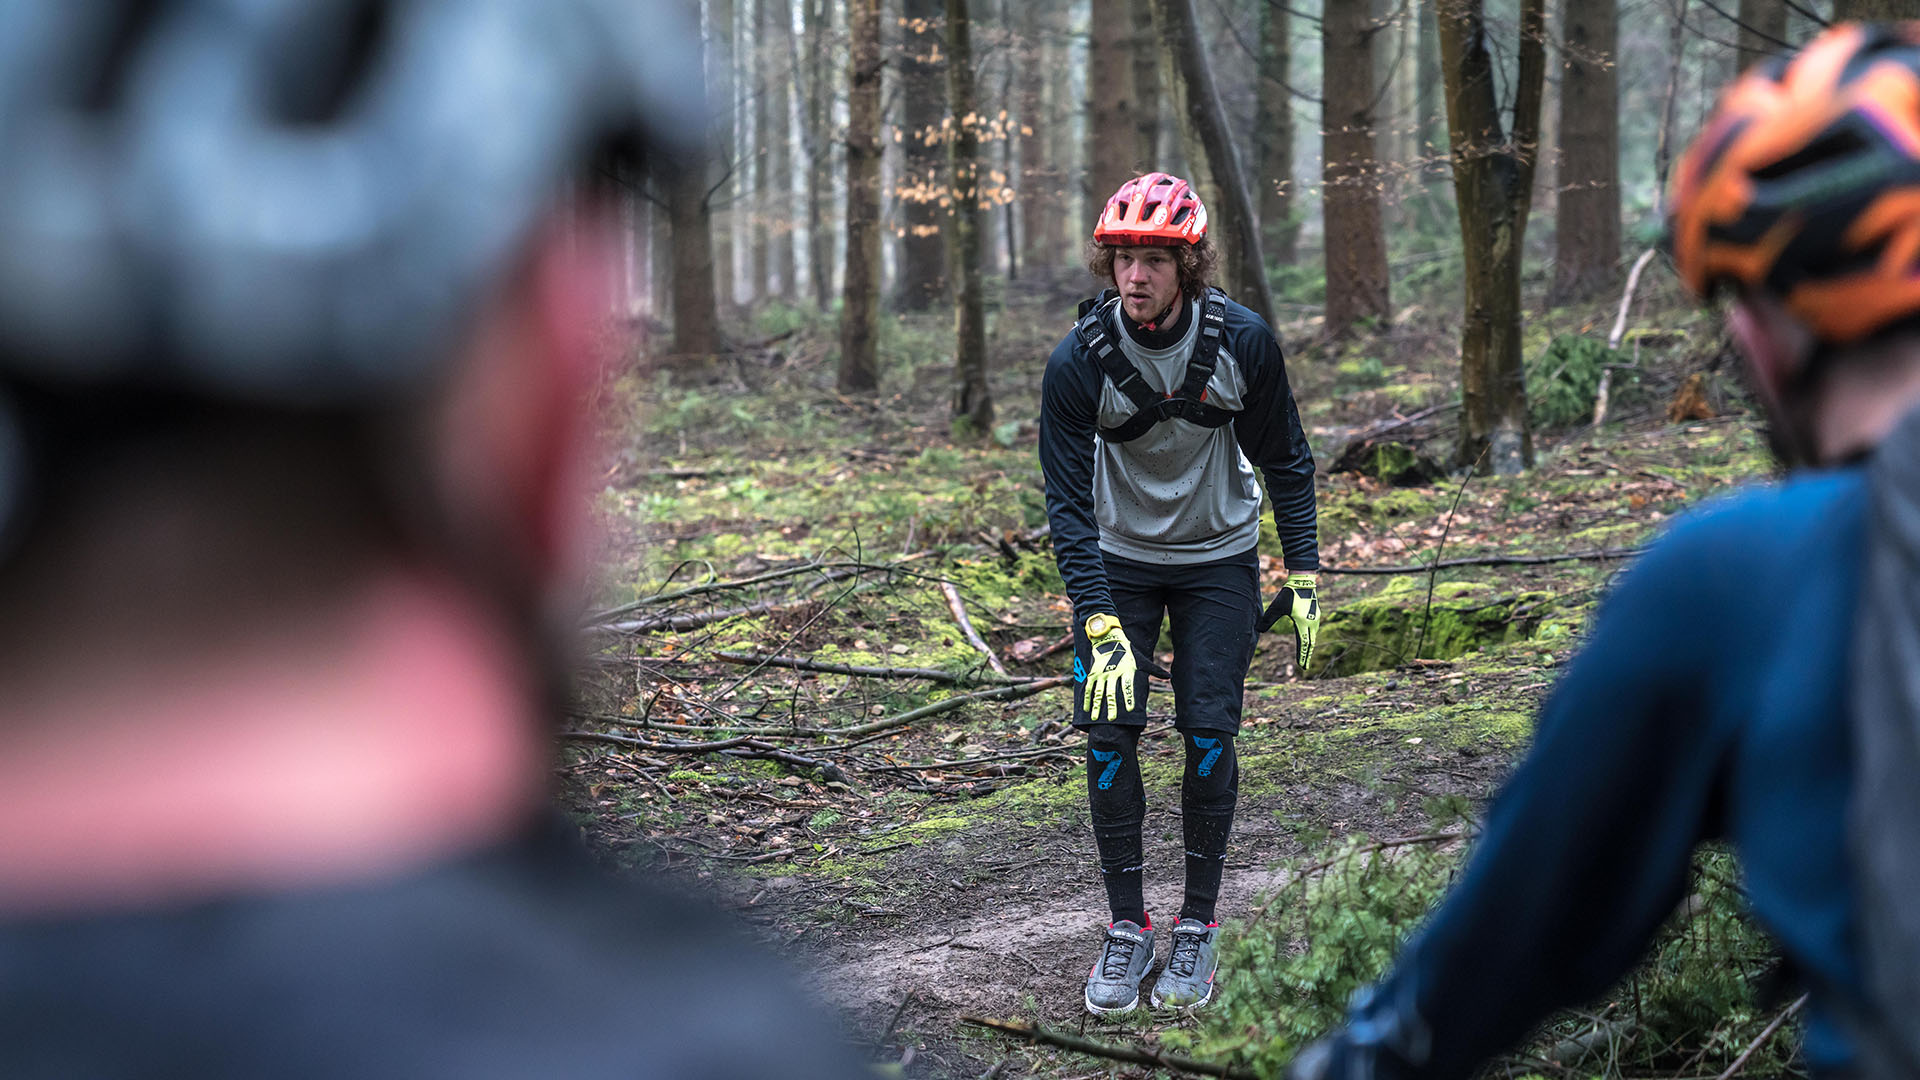 +3 MTB Coach Jay Williamson talks line choice during a coaching event in the Forest of Dean